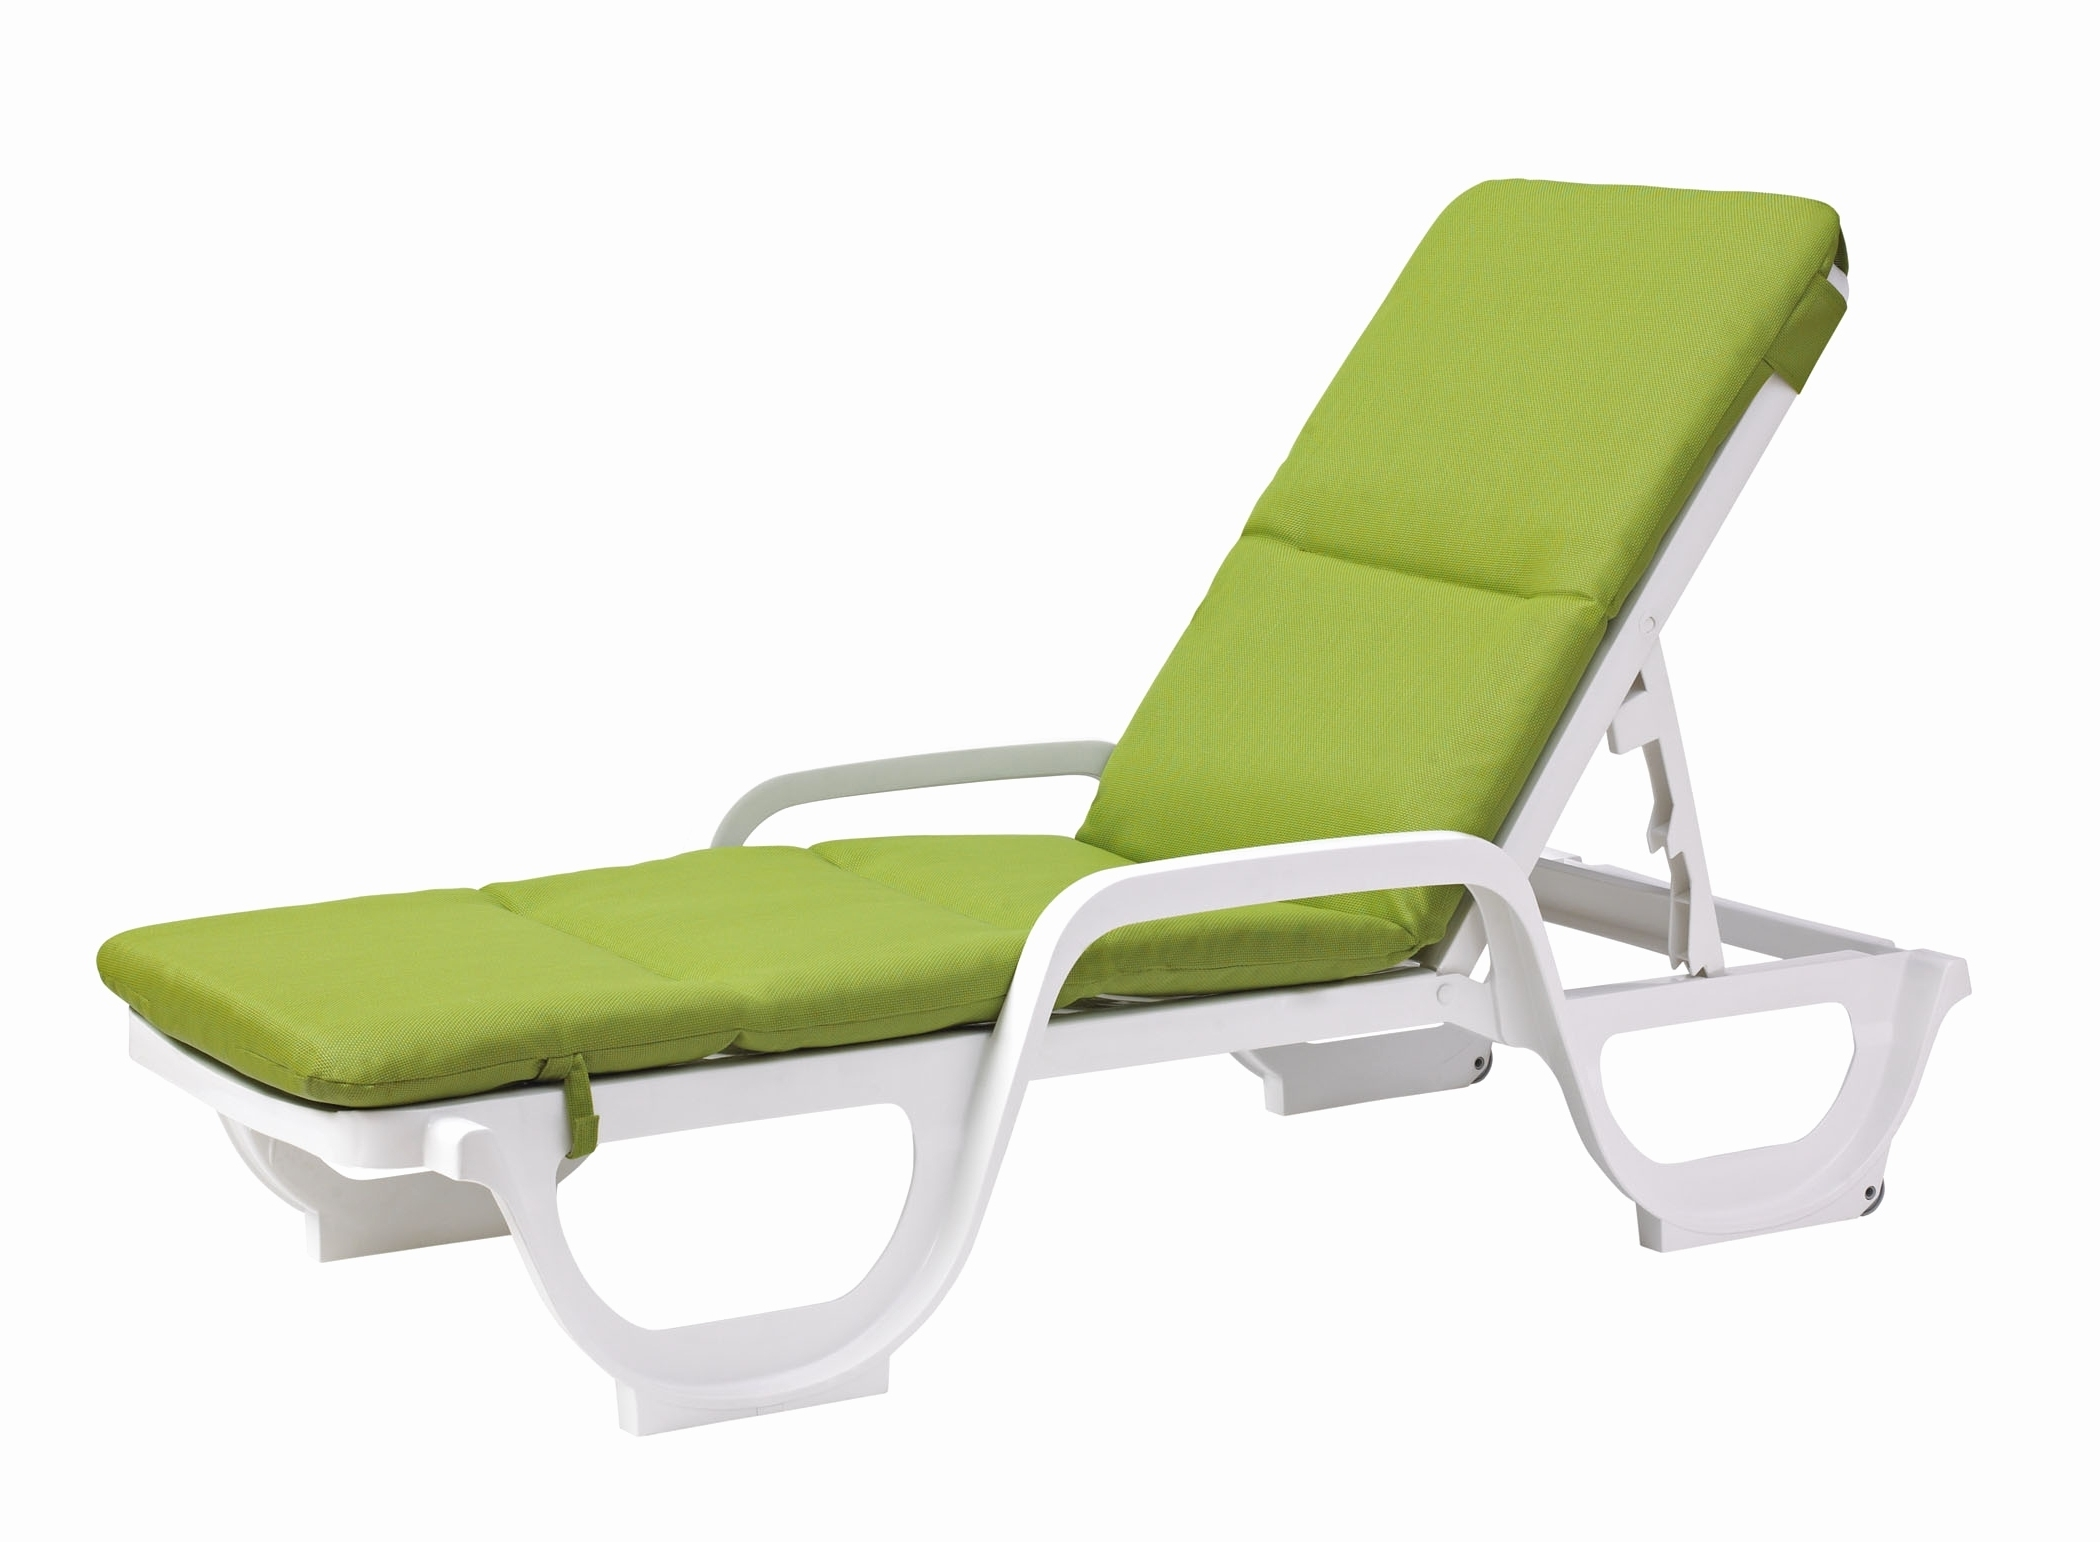 Outdoor : Folding Chaise Lounge Indoor Lounge Furniture Modern Throughout Popular Modern Outdoor Chaise Lounge Chairs (View 9 of 15)